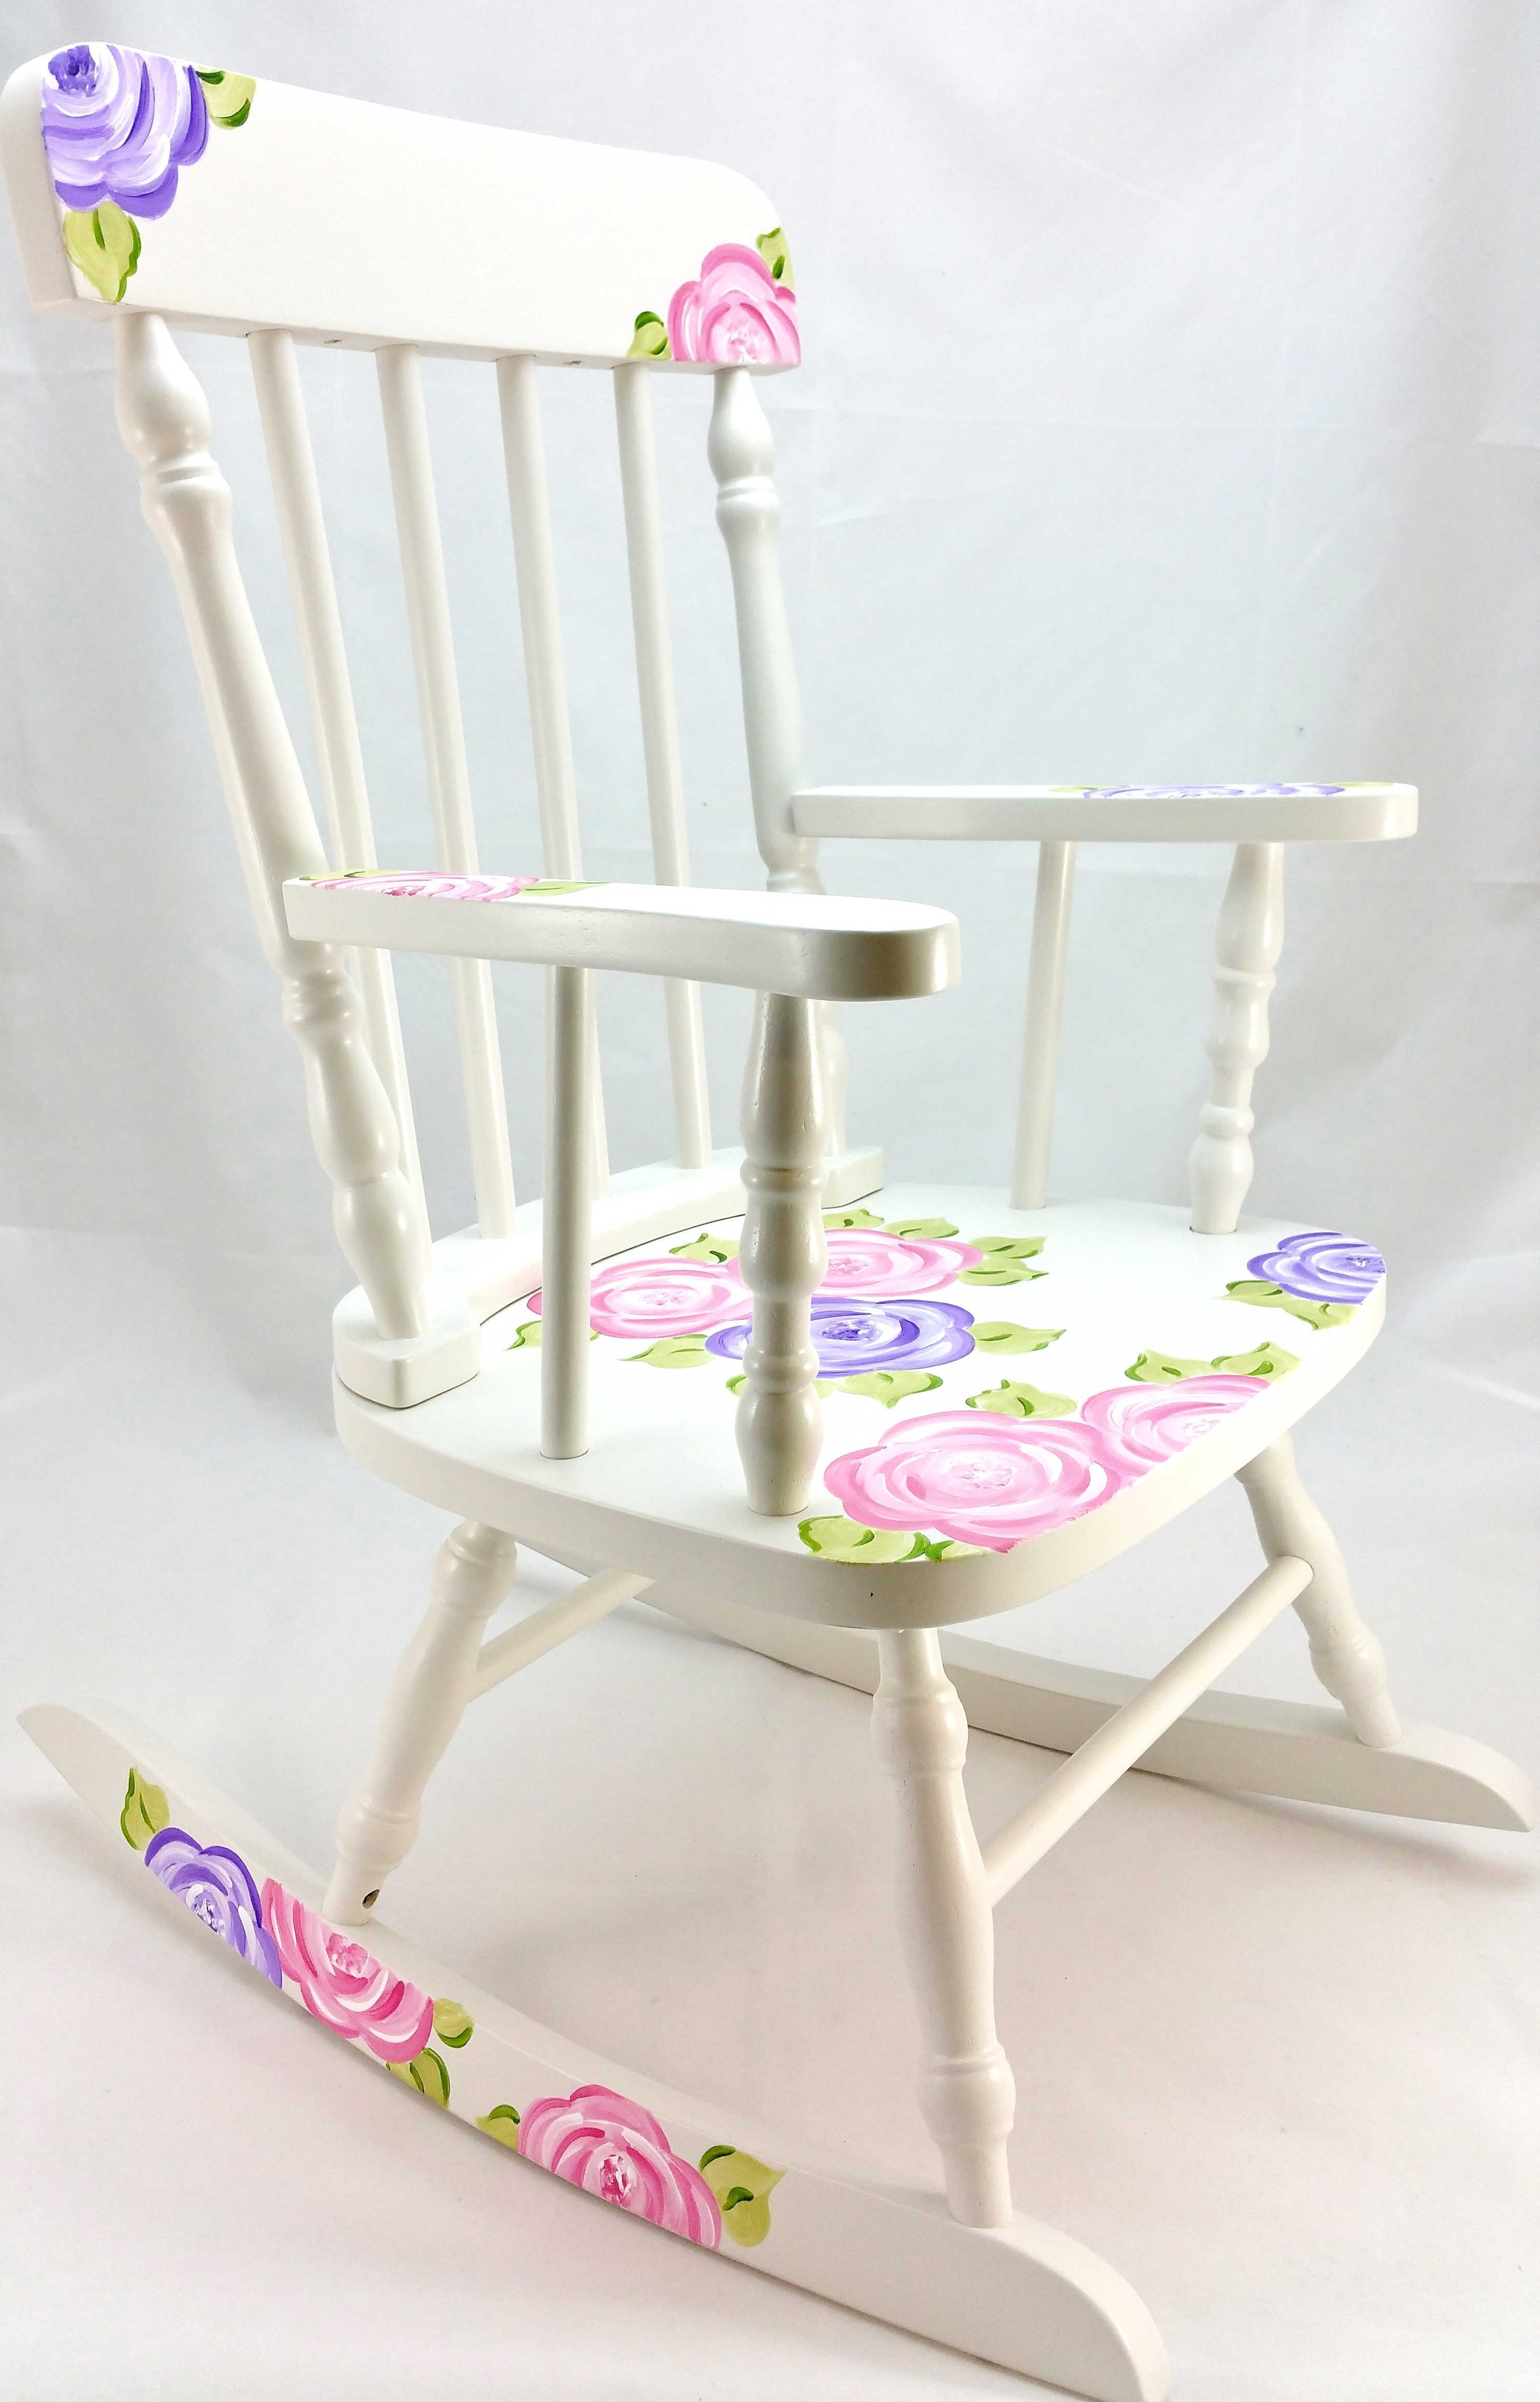 Famous Mod Roses Personalized Rocking Chair – Purple Pumpkin Gifts Throughout Rocking Chairs At Roses (View 14 of 15)